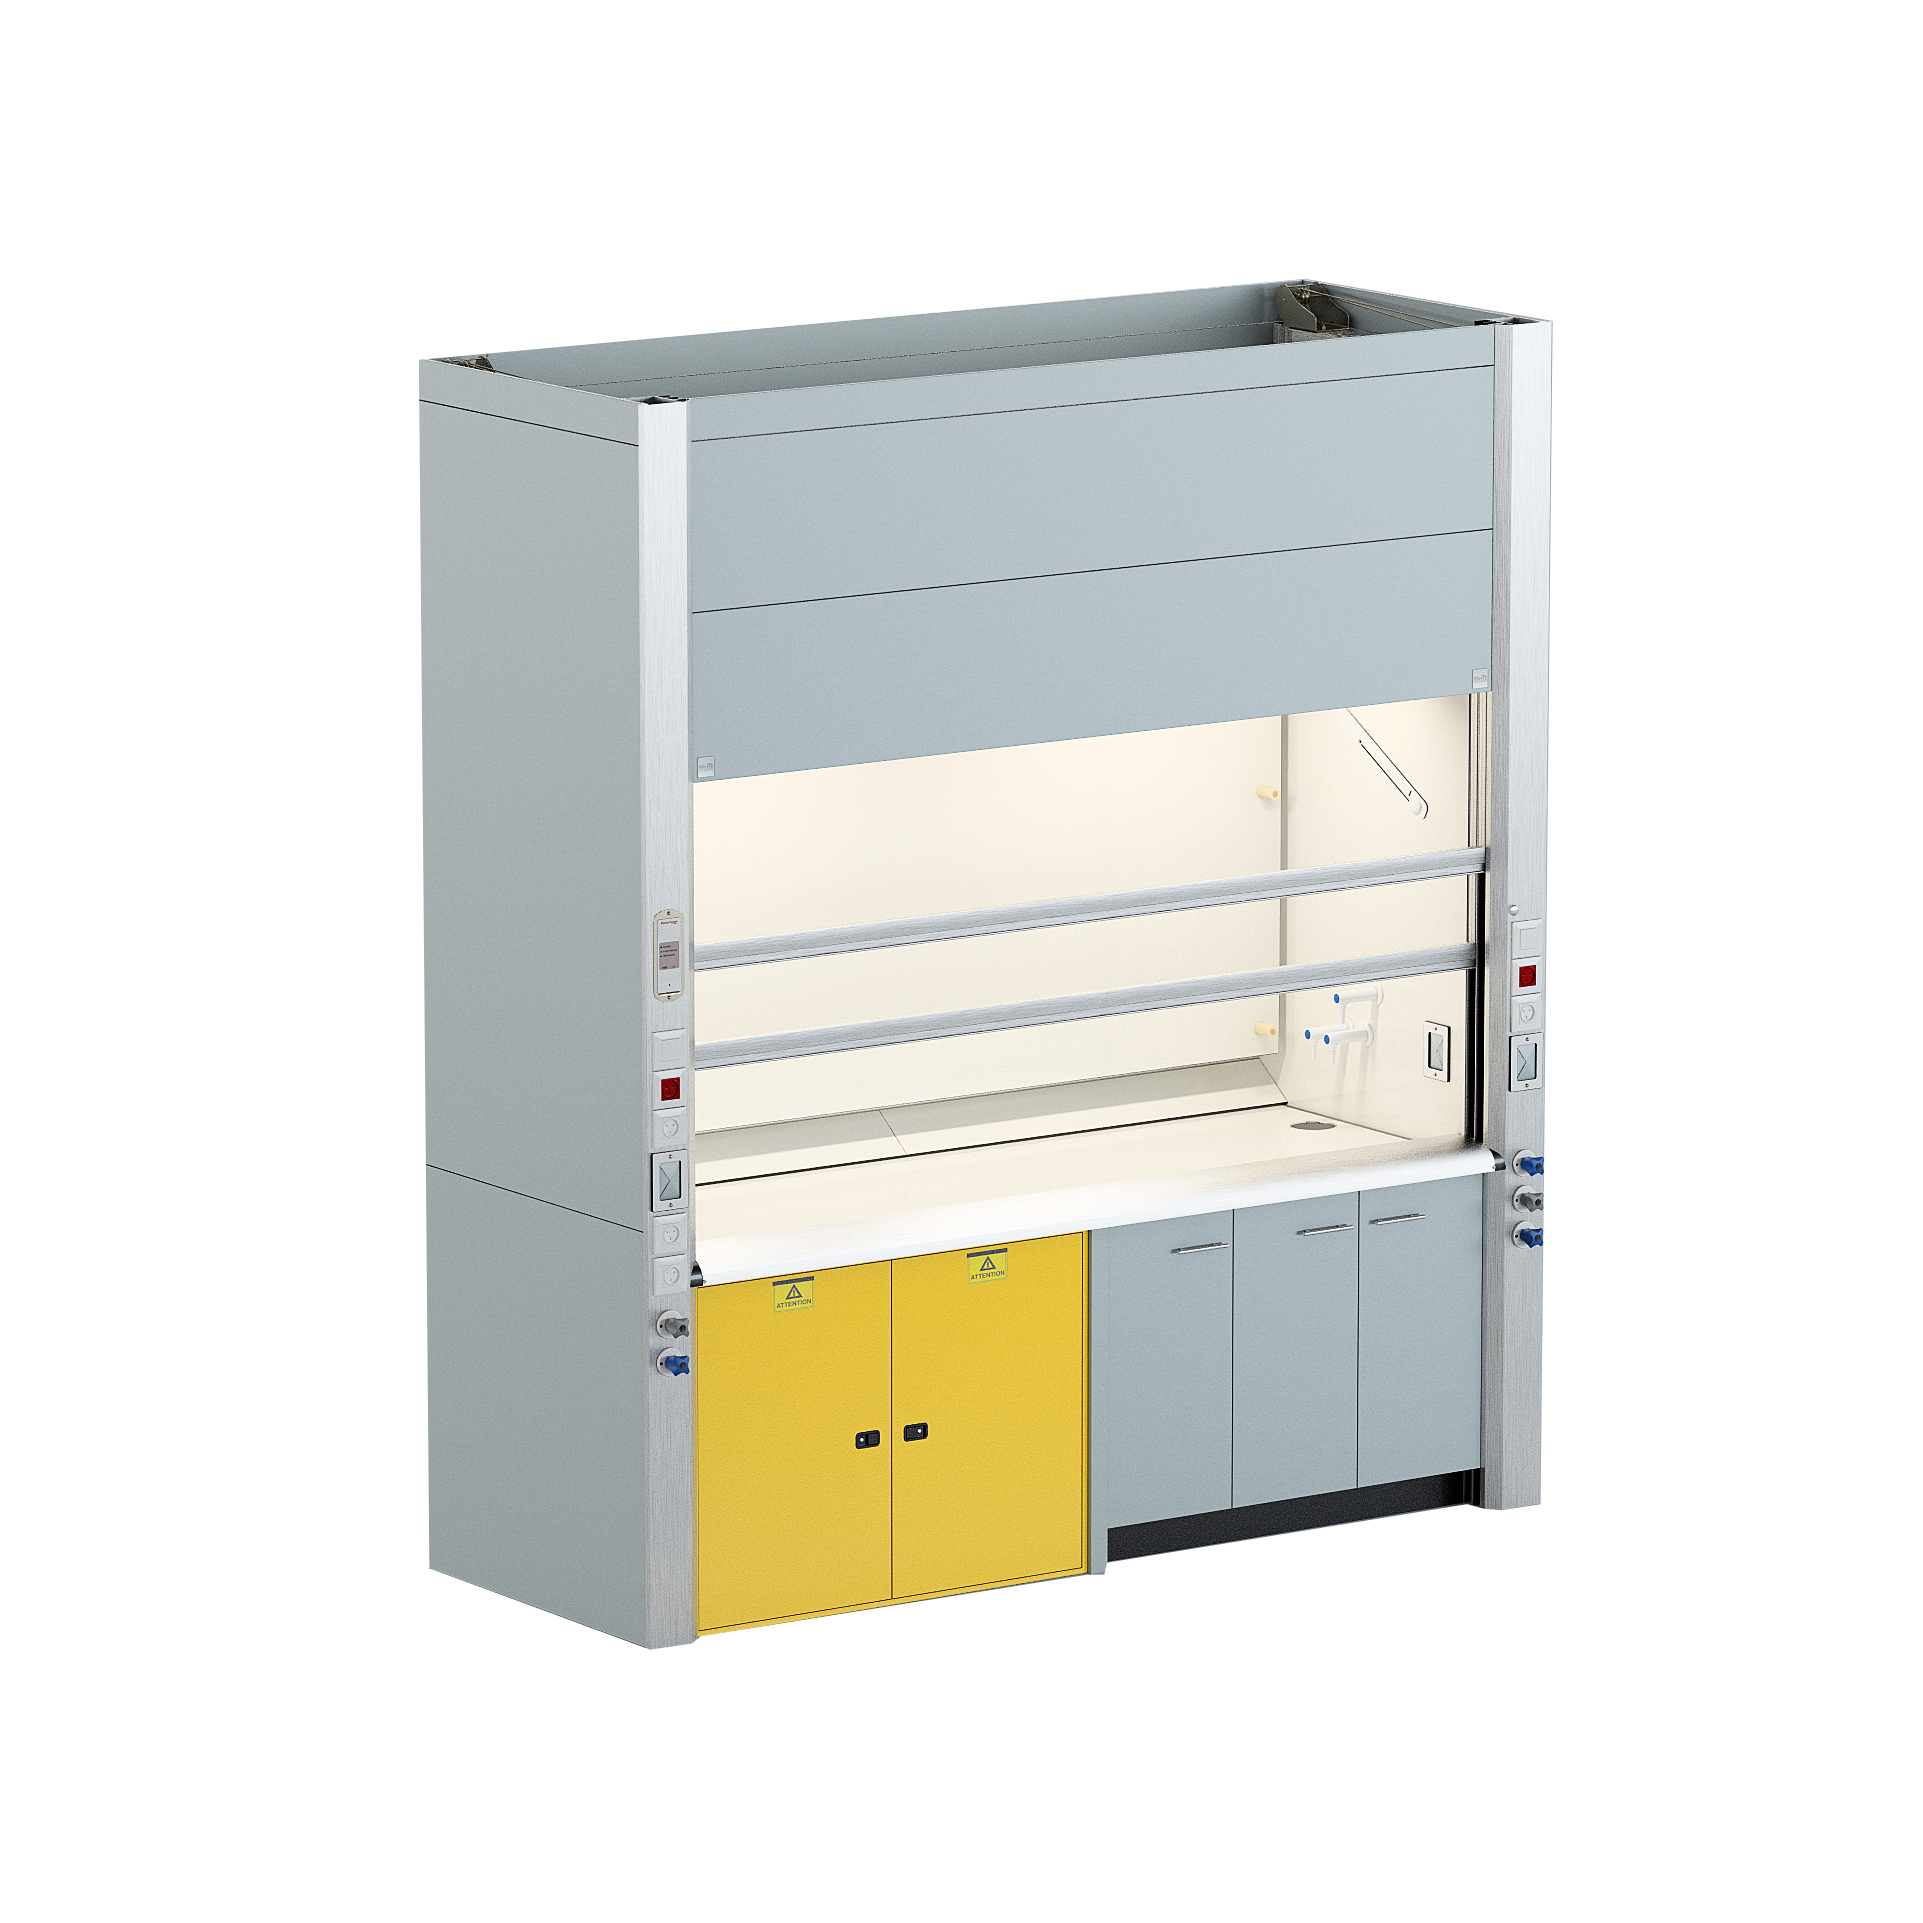 Chemical fume hood with safety cabinet